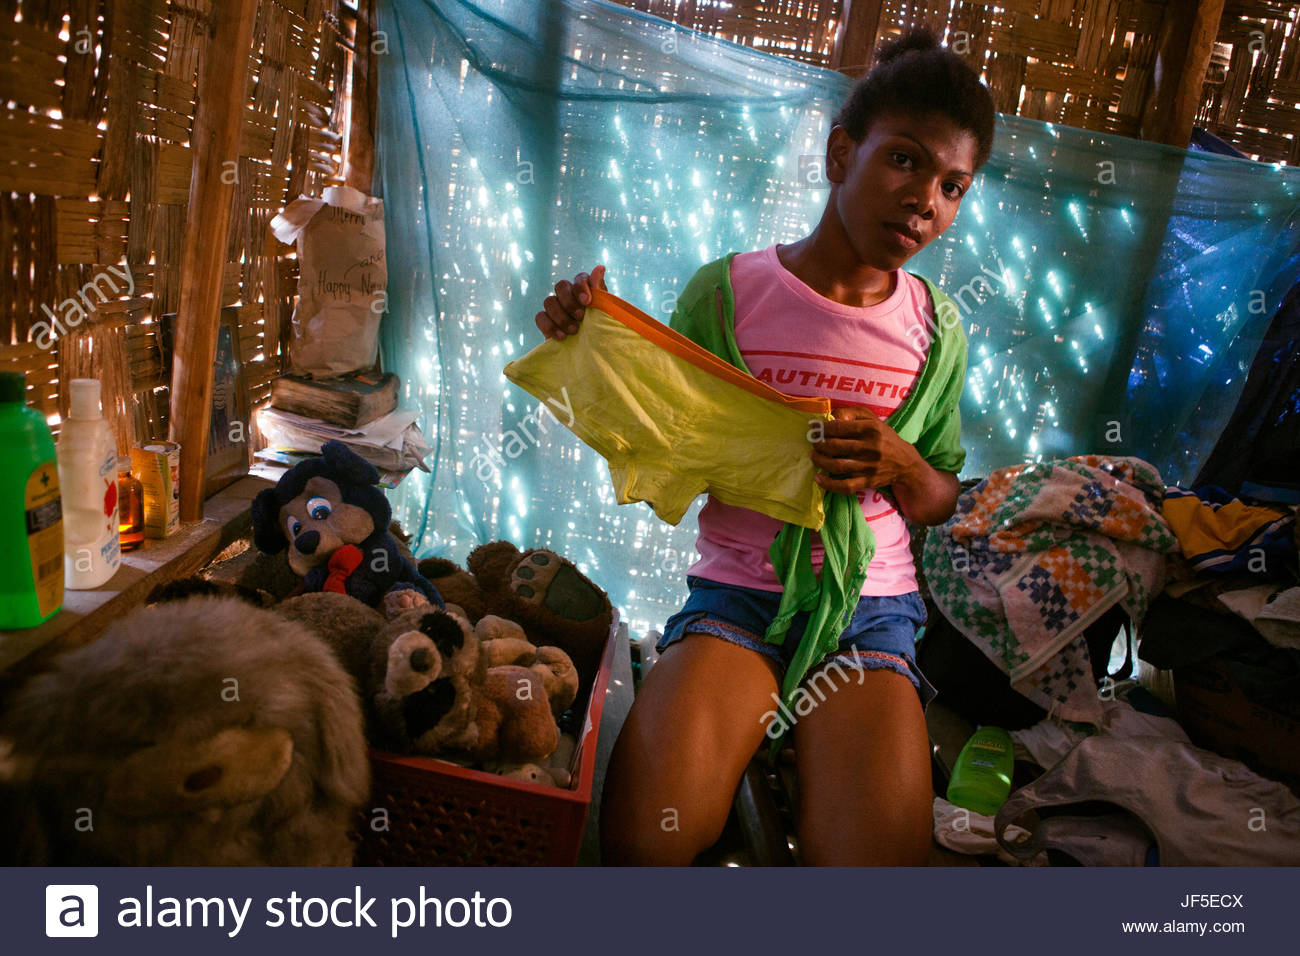 Alvina, formerly Alvin, a transgendered male Ayta holds up a pair of shorts. Access to mainstream media and the - Stock Image